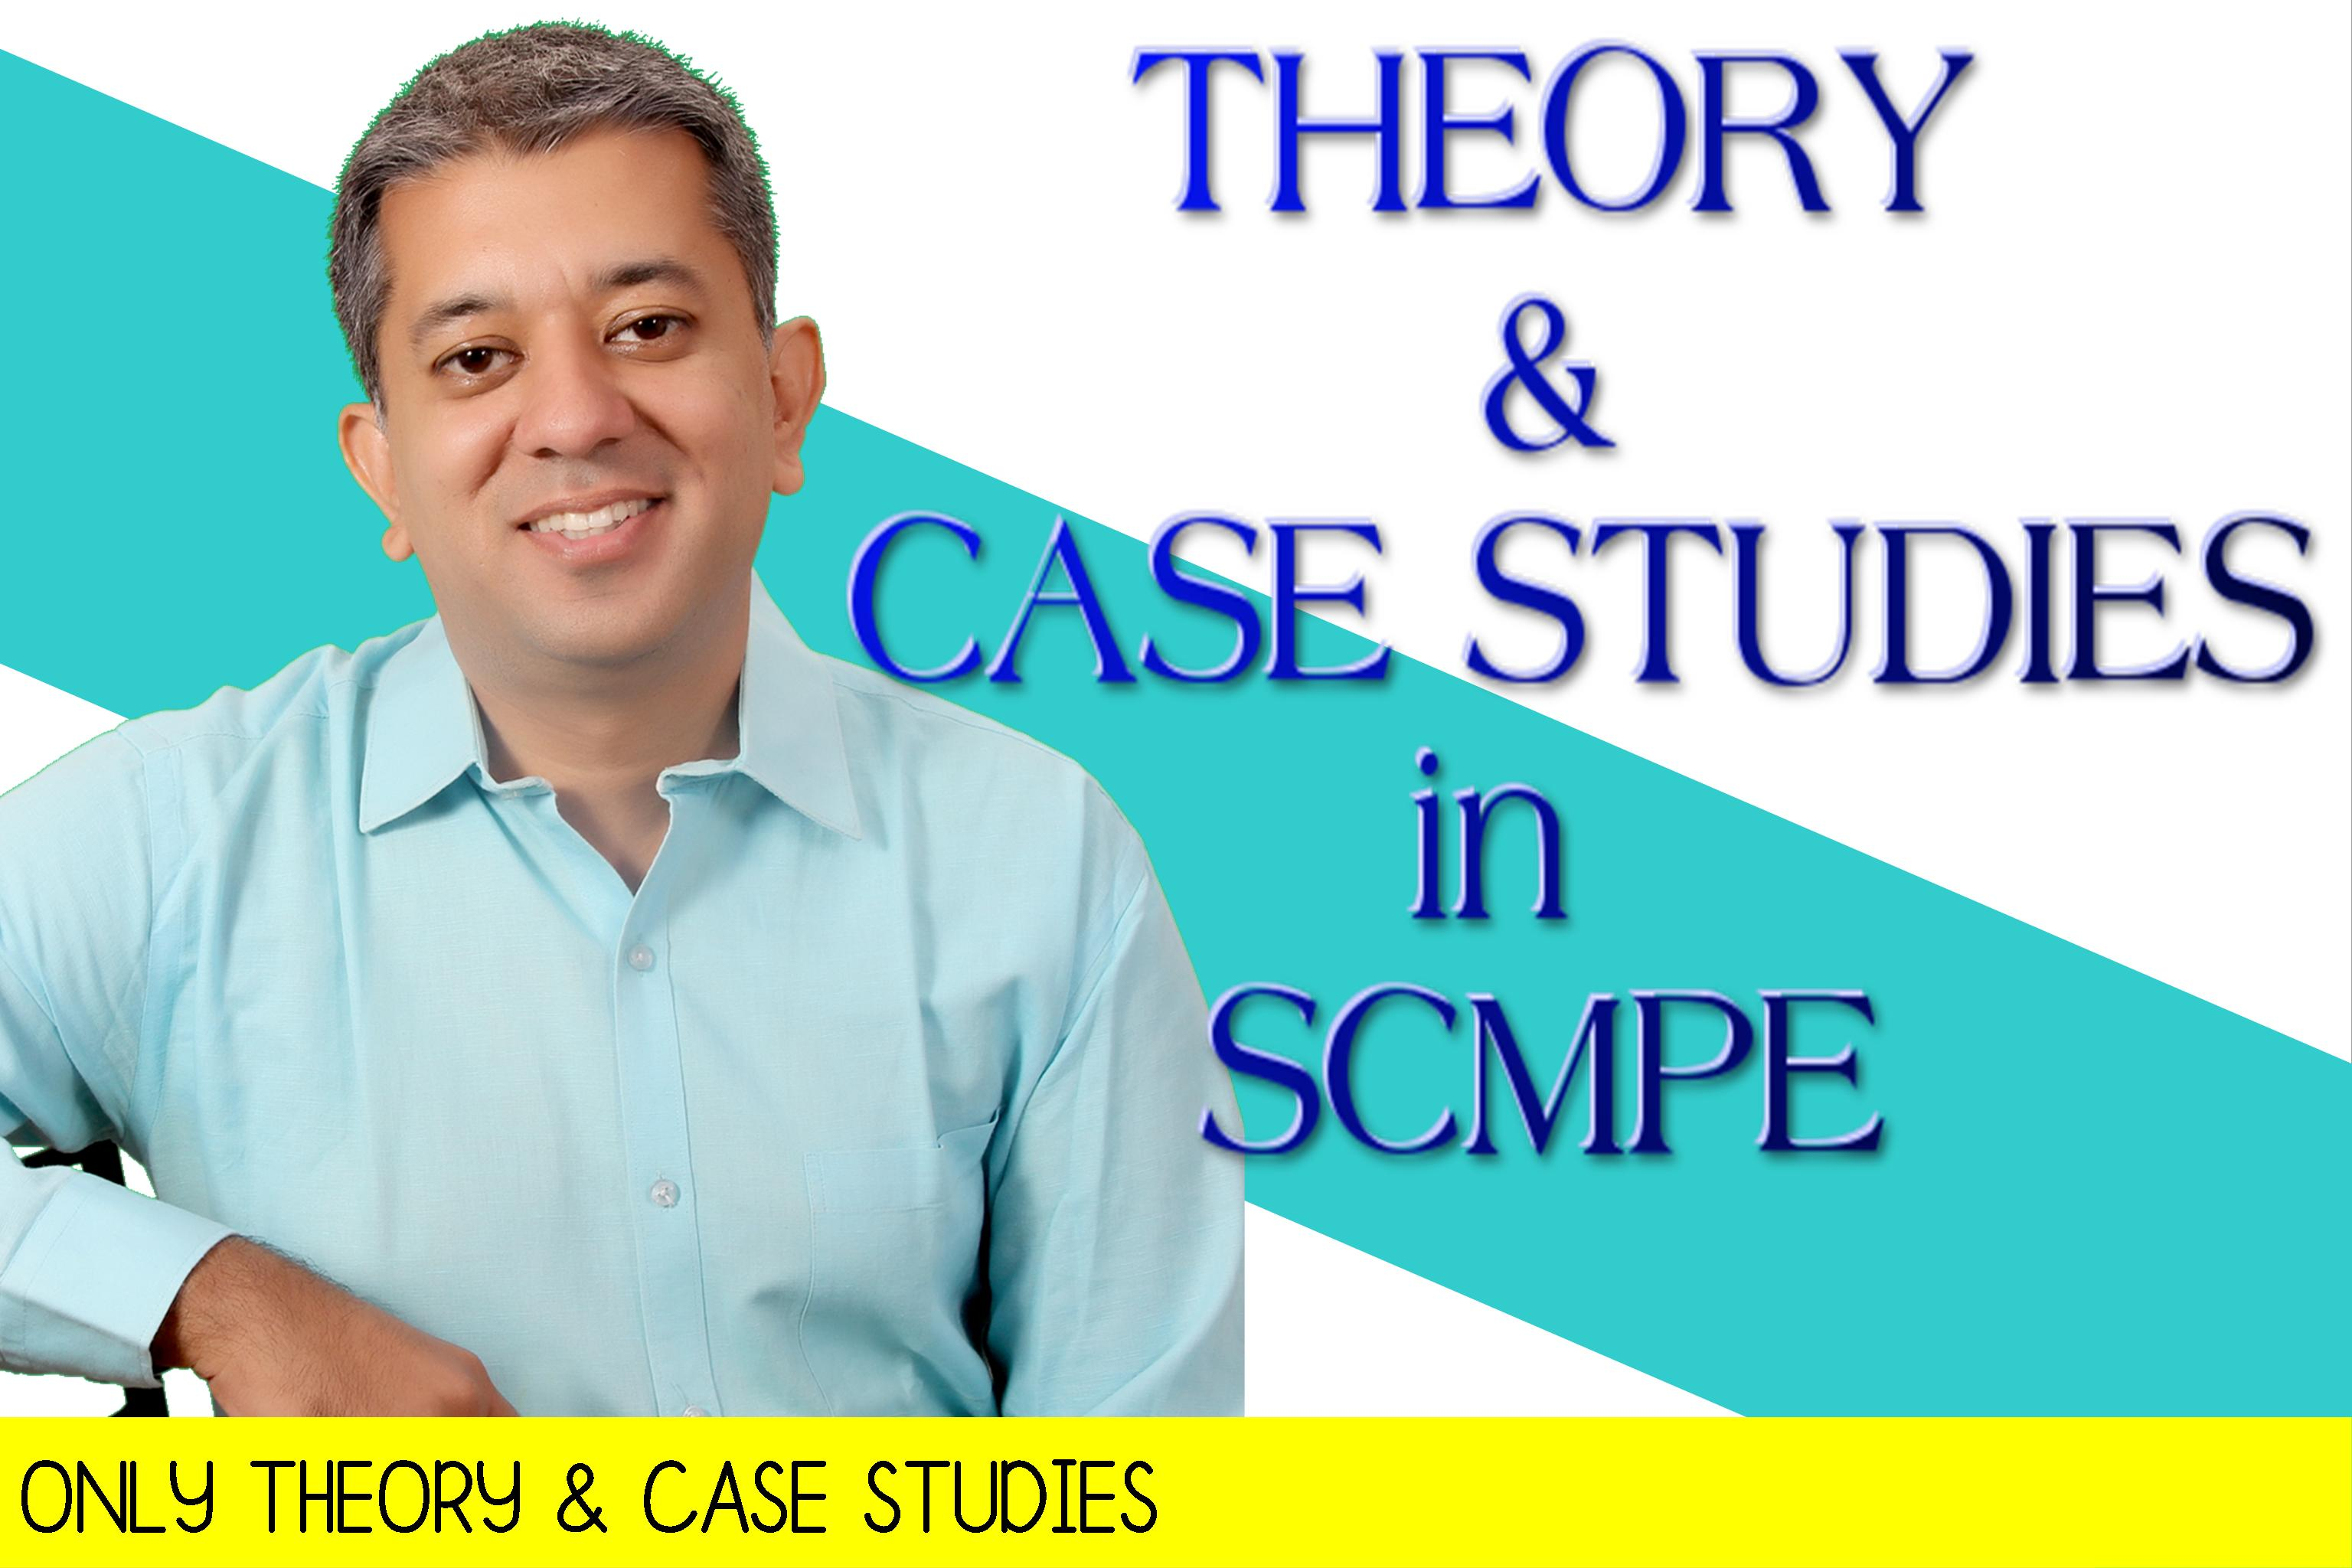 SCMPE – Case Study & Theory Lectures for CA FINAL